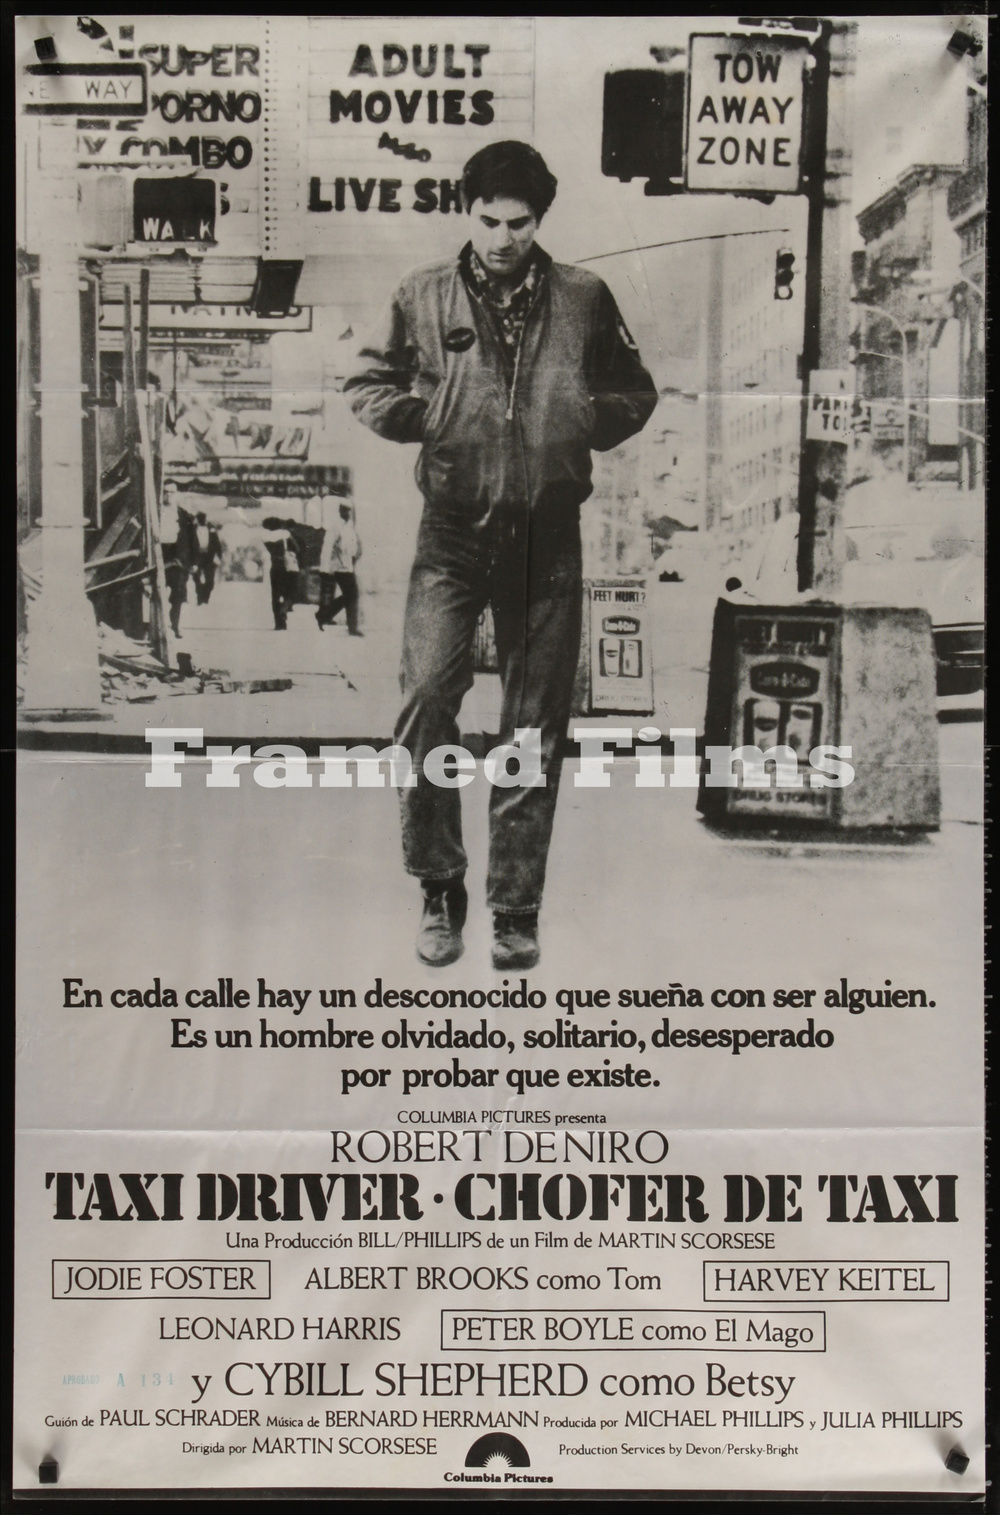 argentinean_taxi_driver_dupe1_JC08111_L.jpg